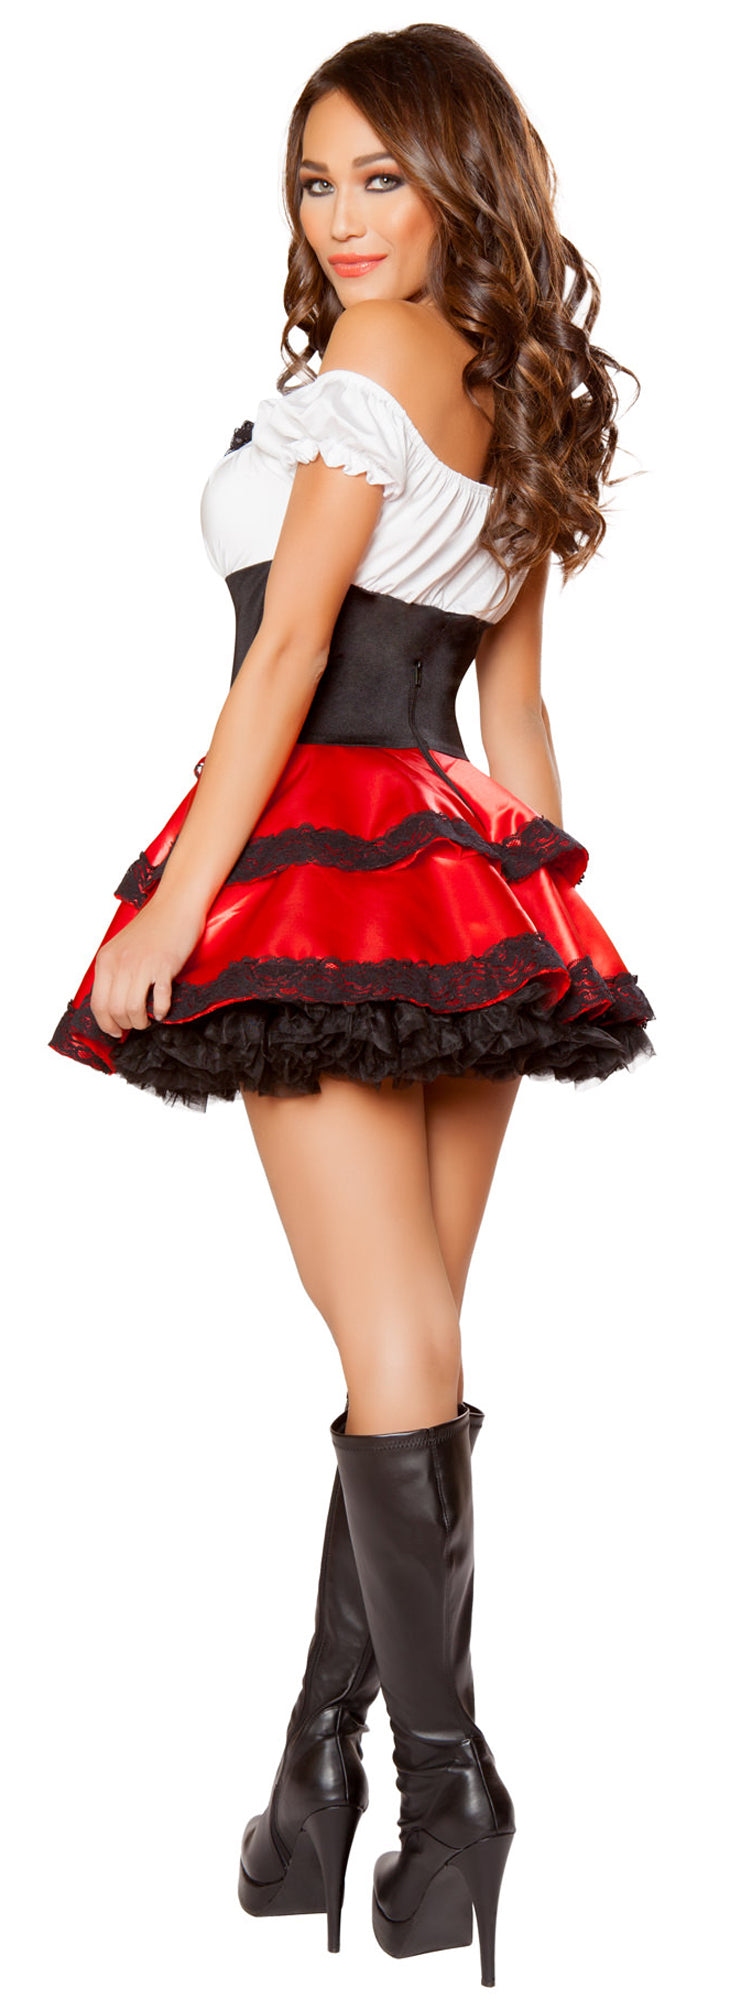 RM-10089 Little Red Rider Costume Back